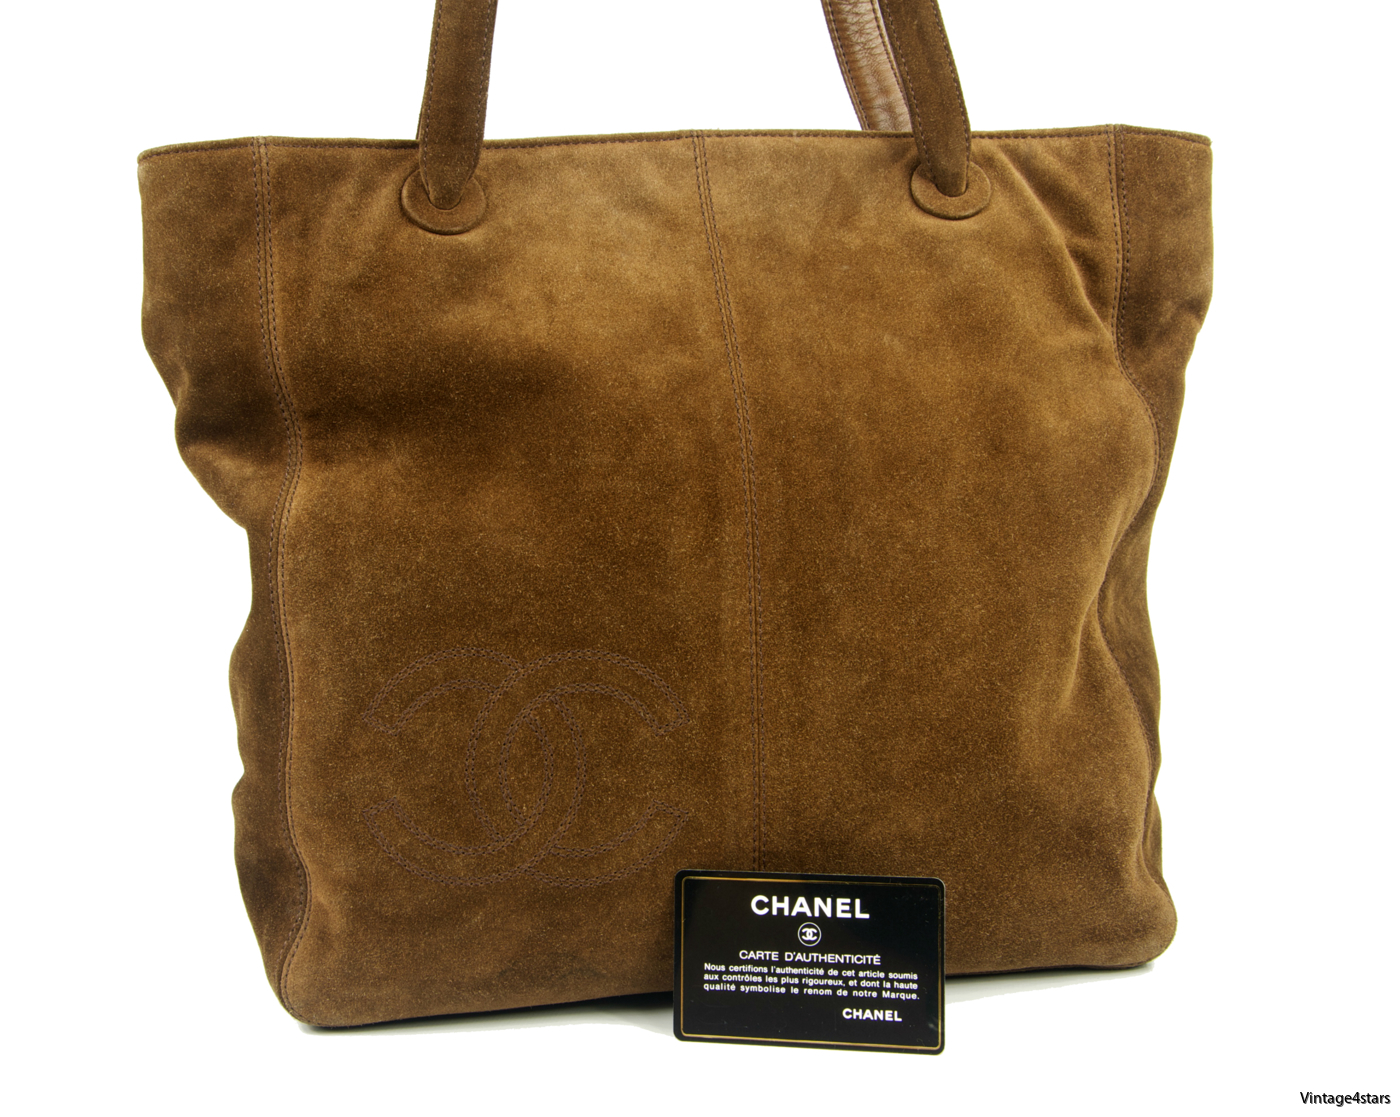 CHANEL Tote Suede Brown 06